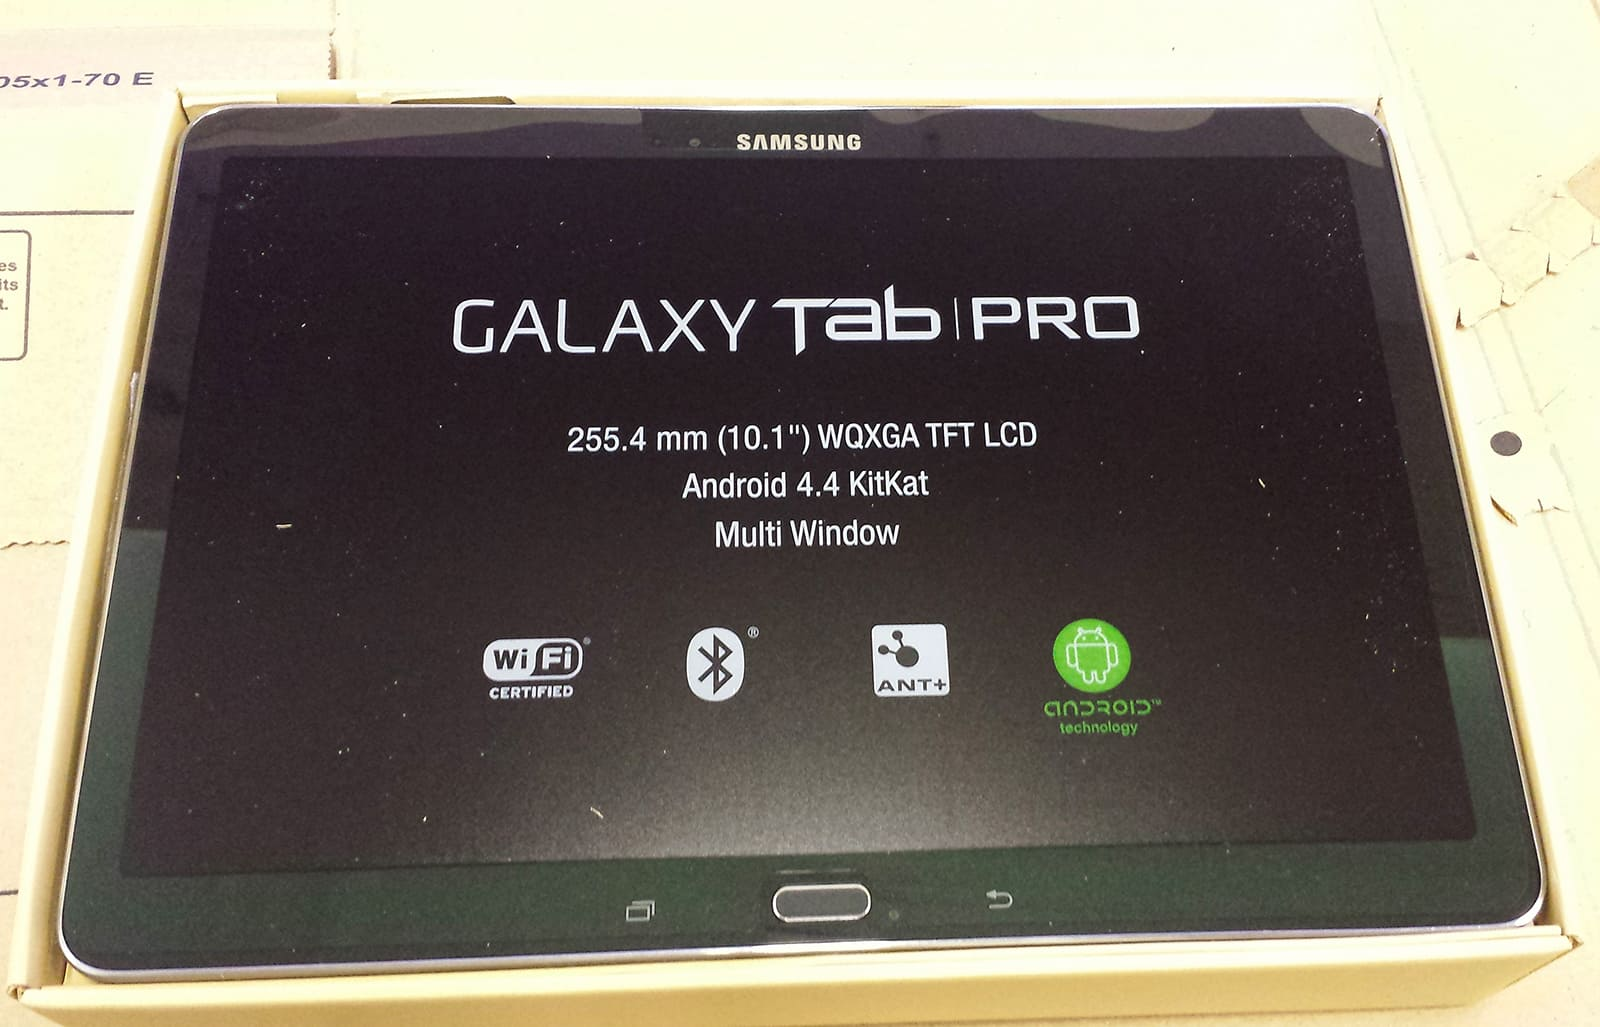 Samsung Galaxy Tab Pro 10.1 Review (Opening to 3 Months)